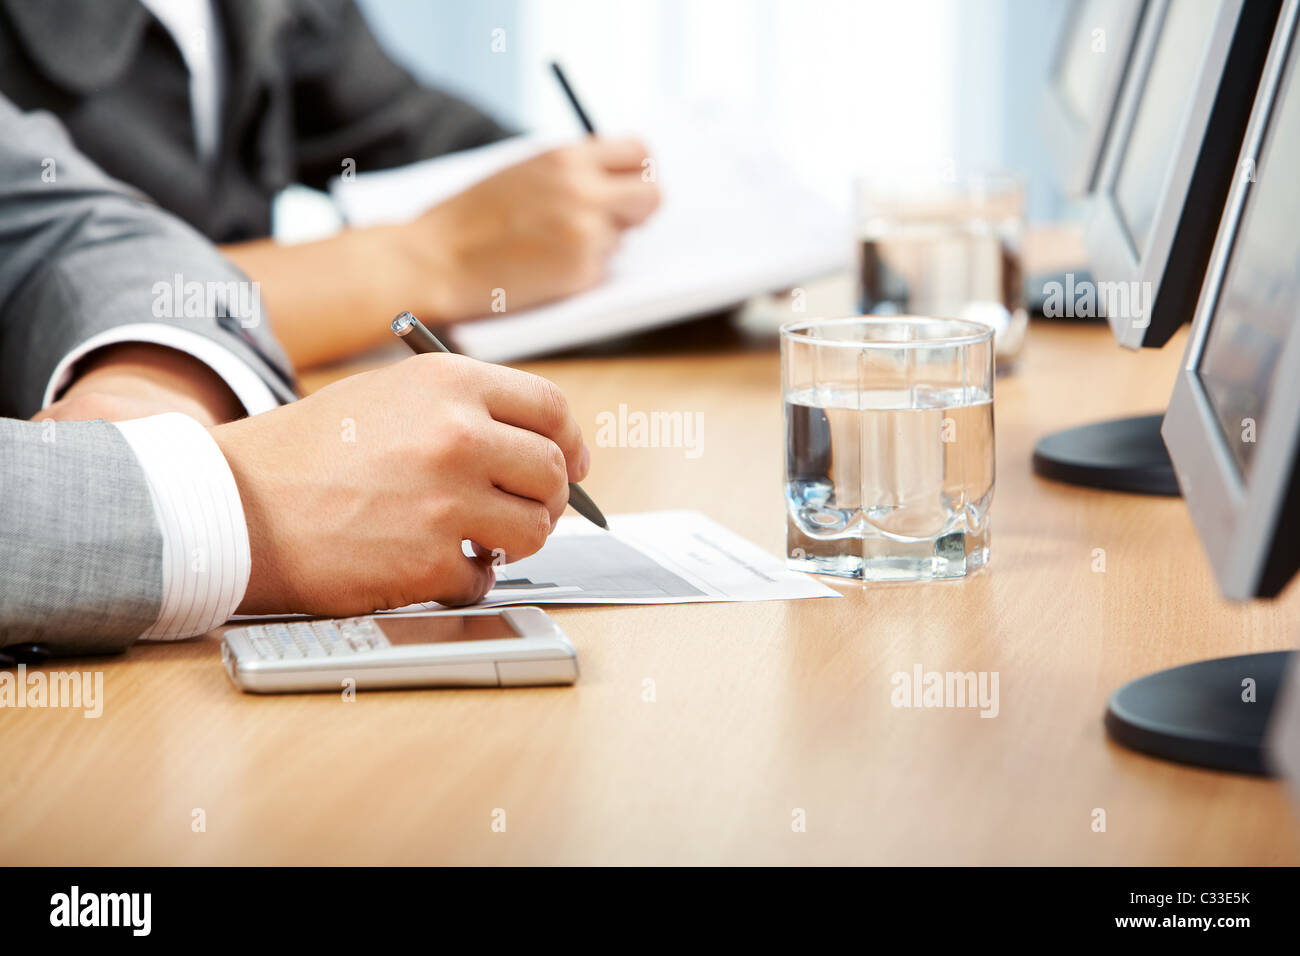 Image of human hand making notes with glass of water, cellphone and monitors near by - Stock Image